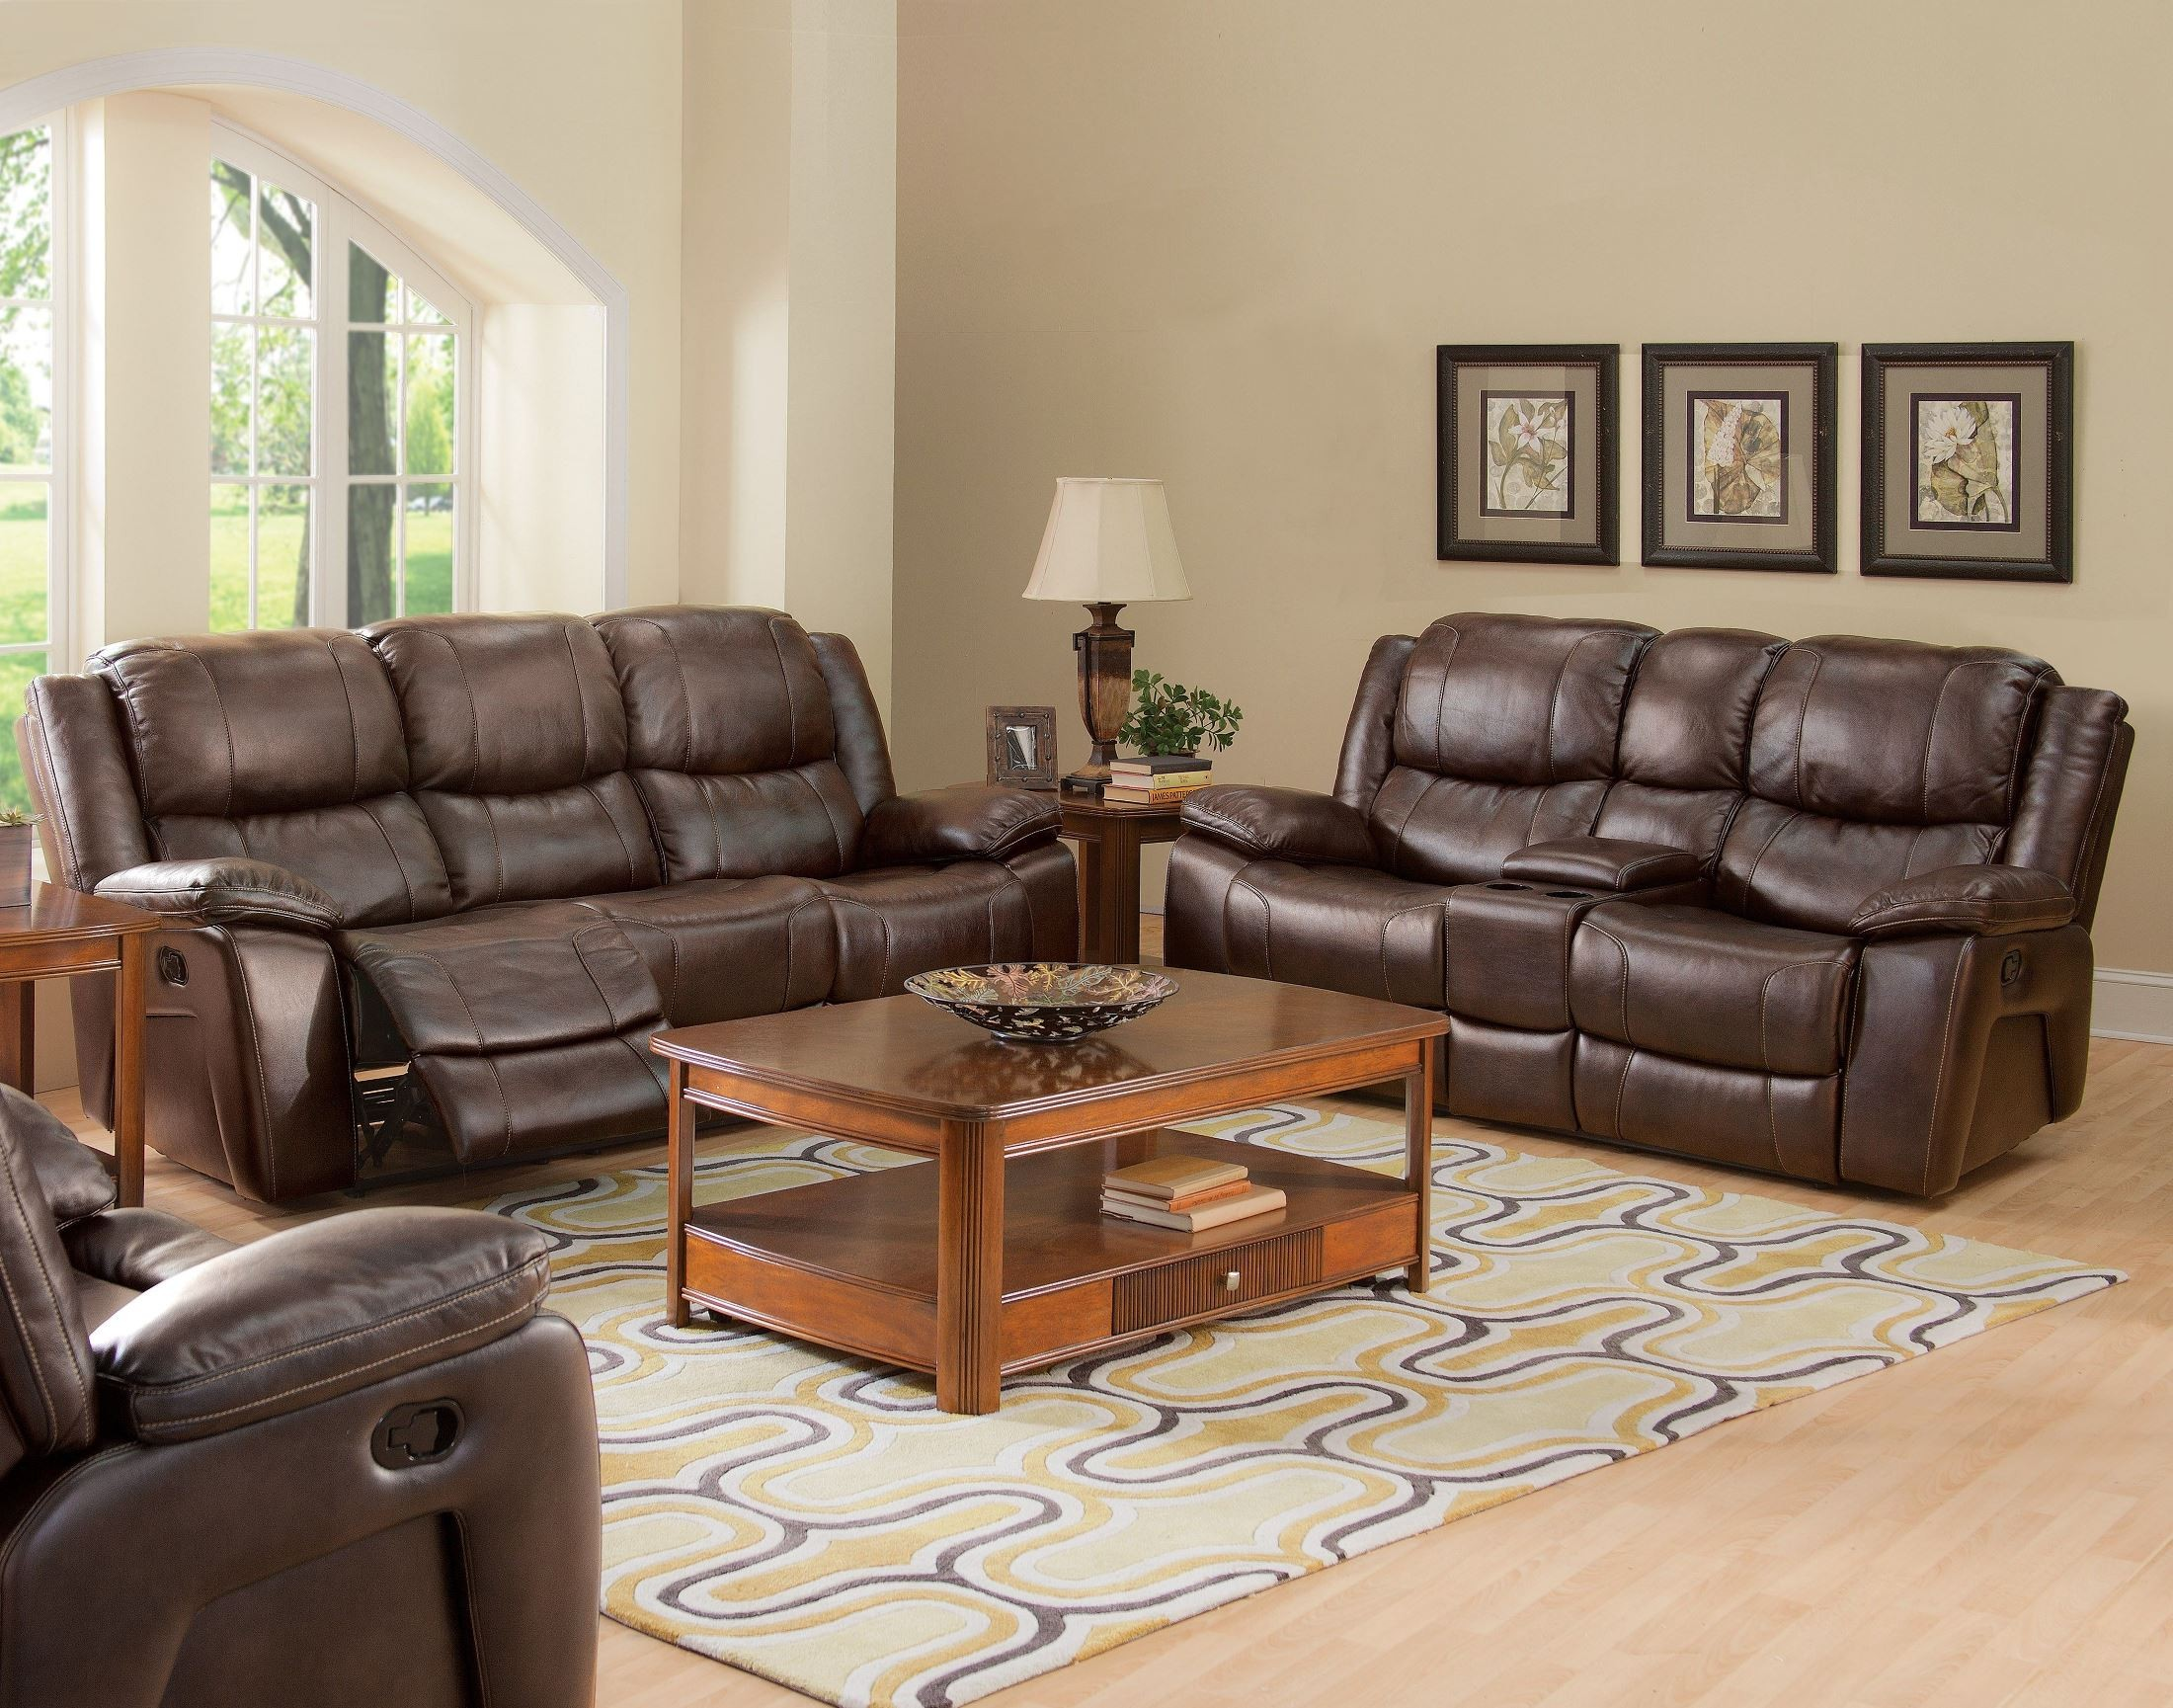 kenwood premier brown power reclining living room set from new classics 22 245 32 pbw. Black Bedroom Furniture Sets. Home Design Ideas